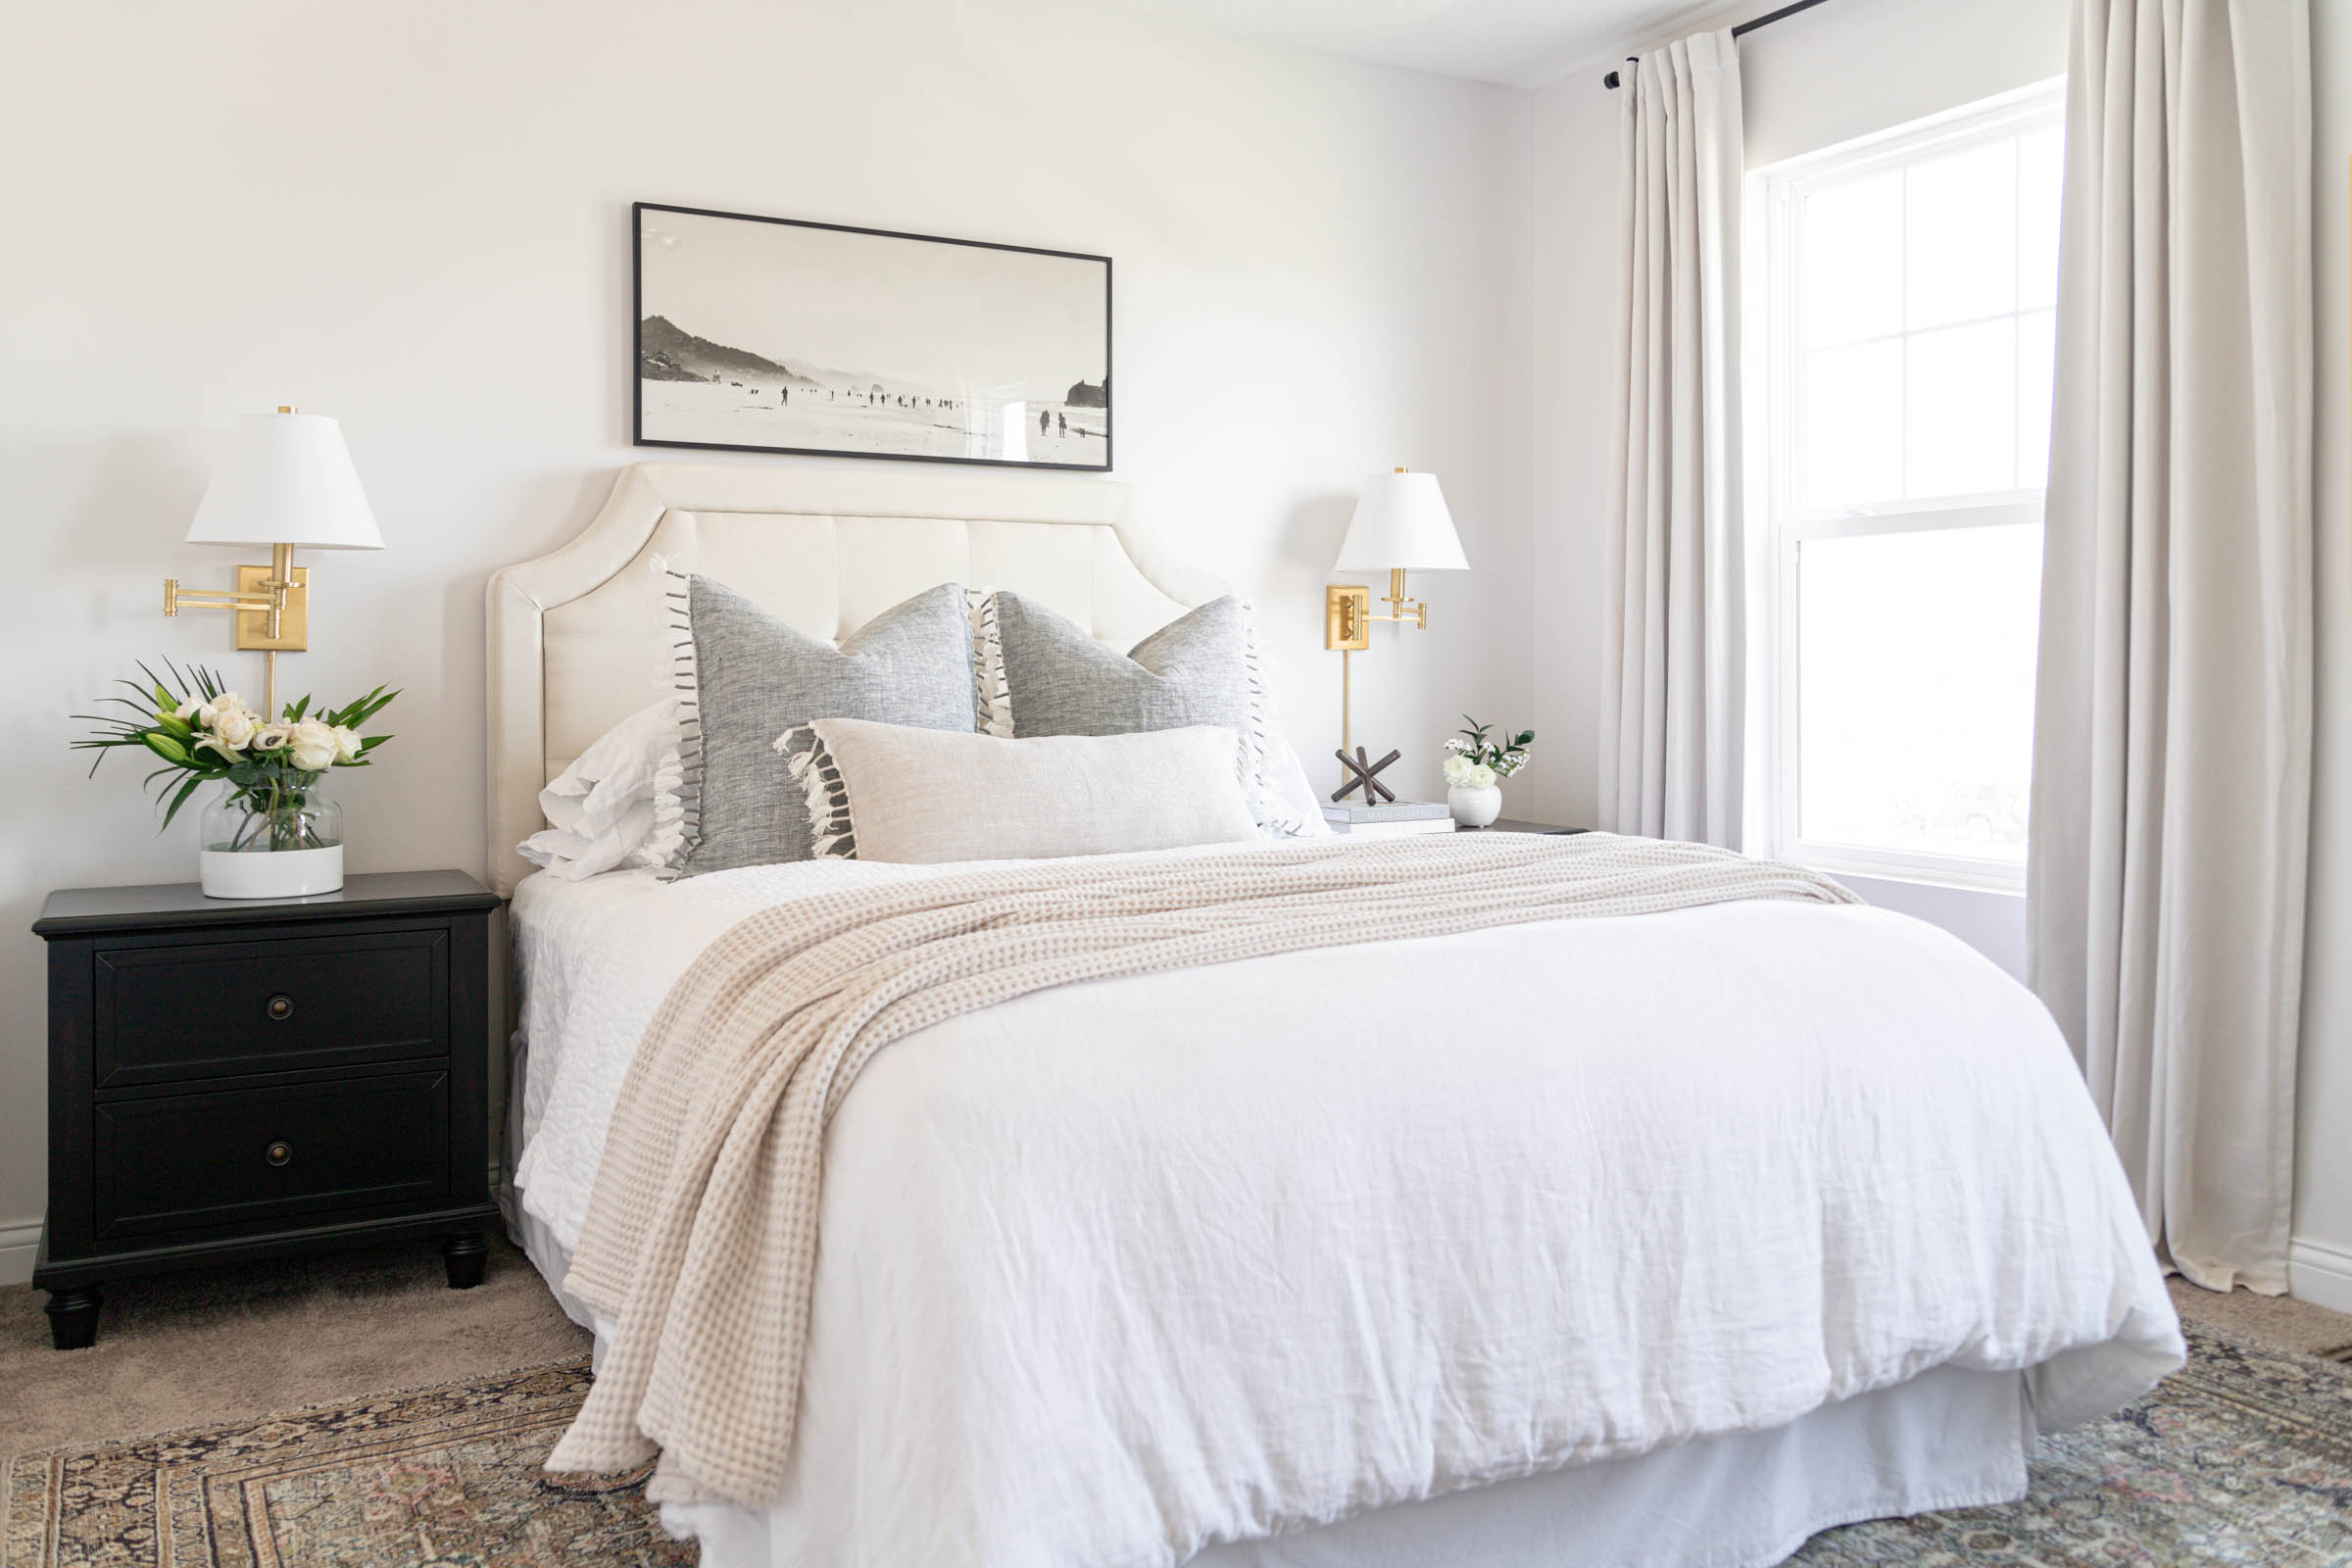 casual bedroom styling with white linen duvet, brass wall sconces